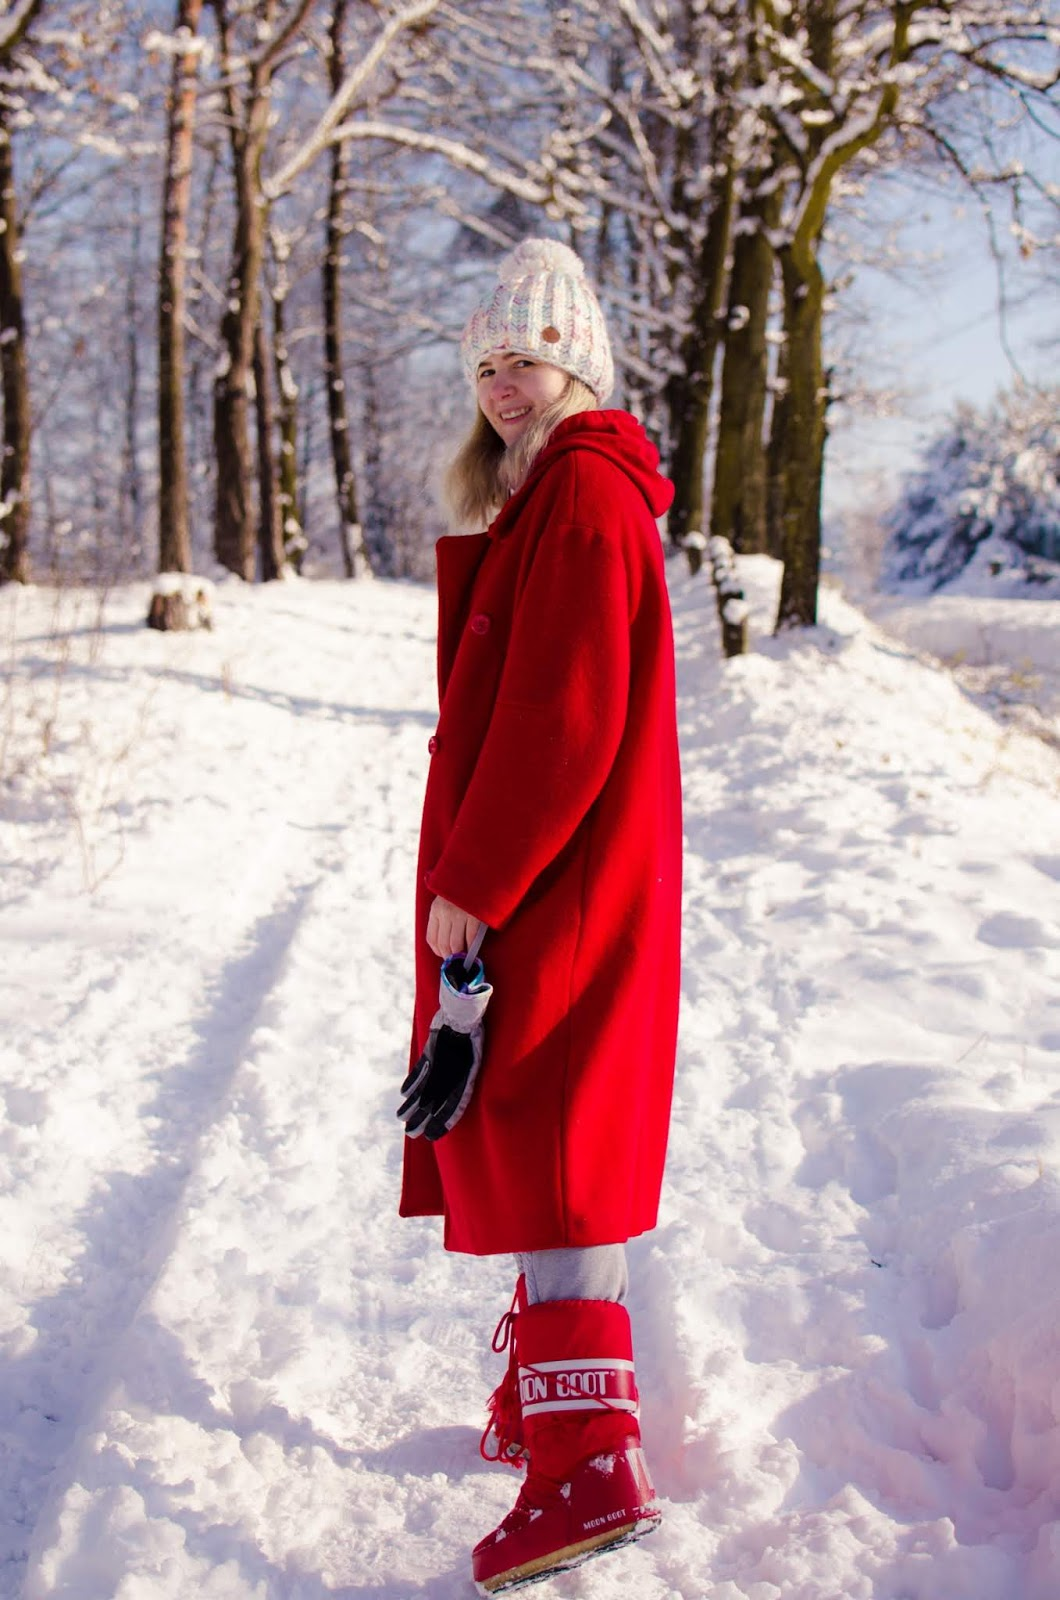 #zima #winterlook #nature #forest #love  #moonboot #moda #inspiracja #winterstyle #style #hmcoat #redmoonboot